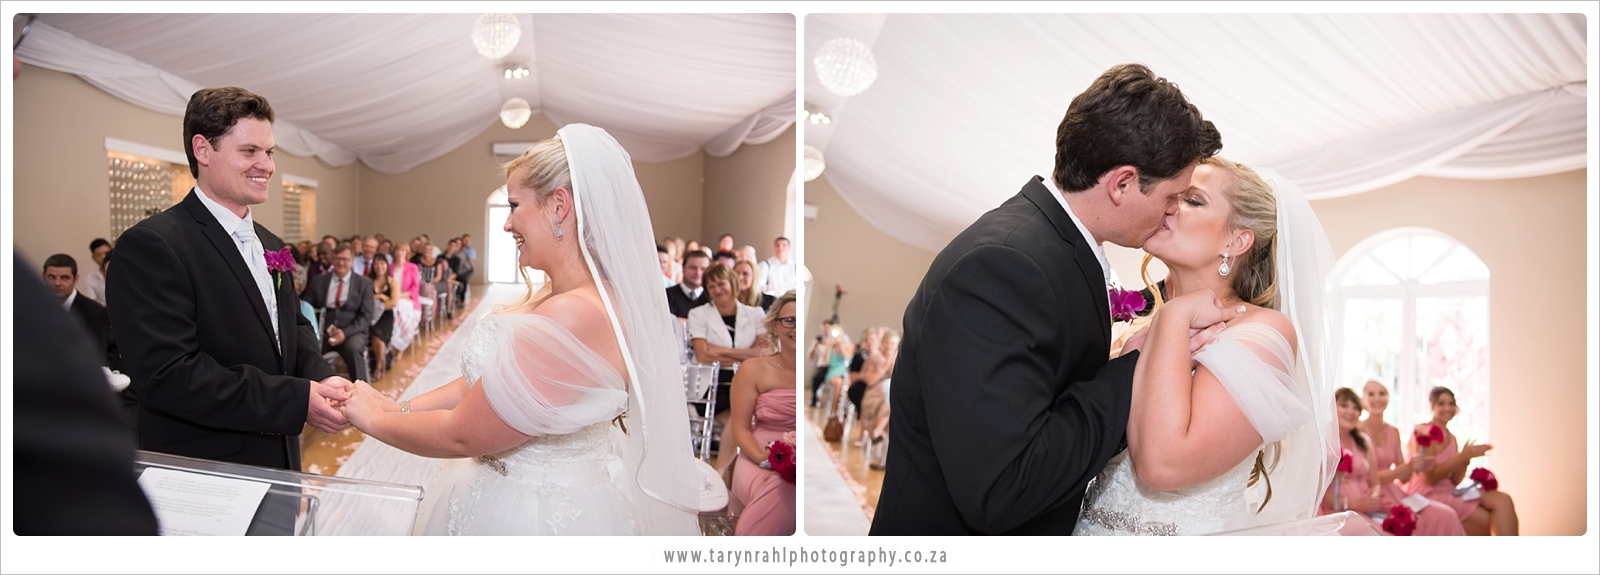 Jessica and Peter | Wedding at Running Waters